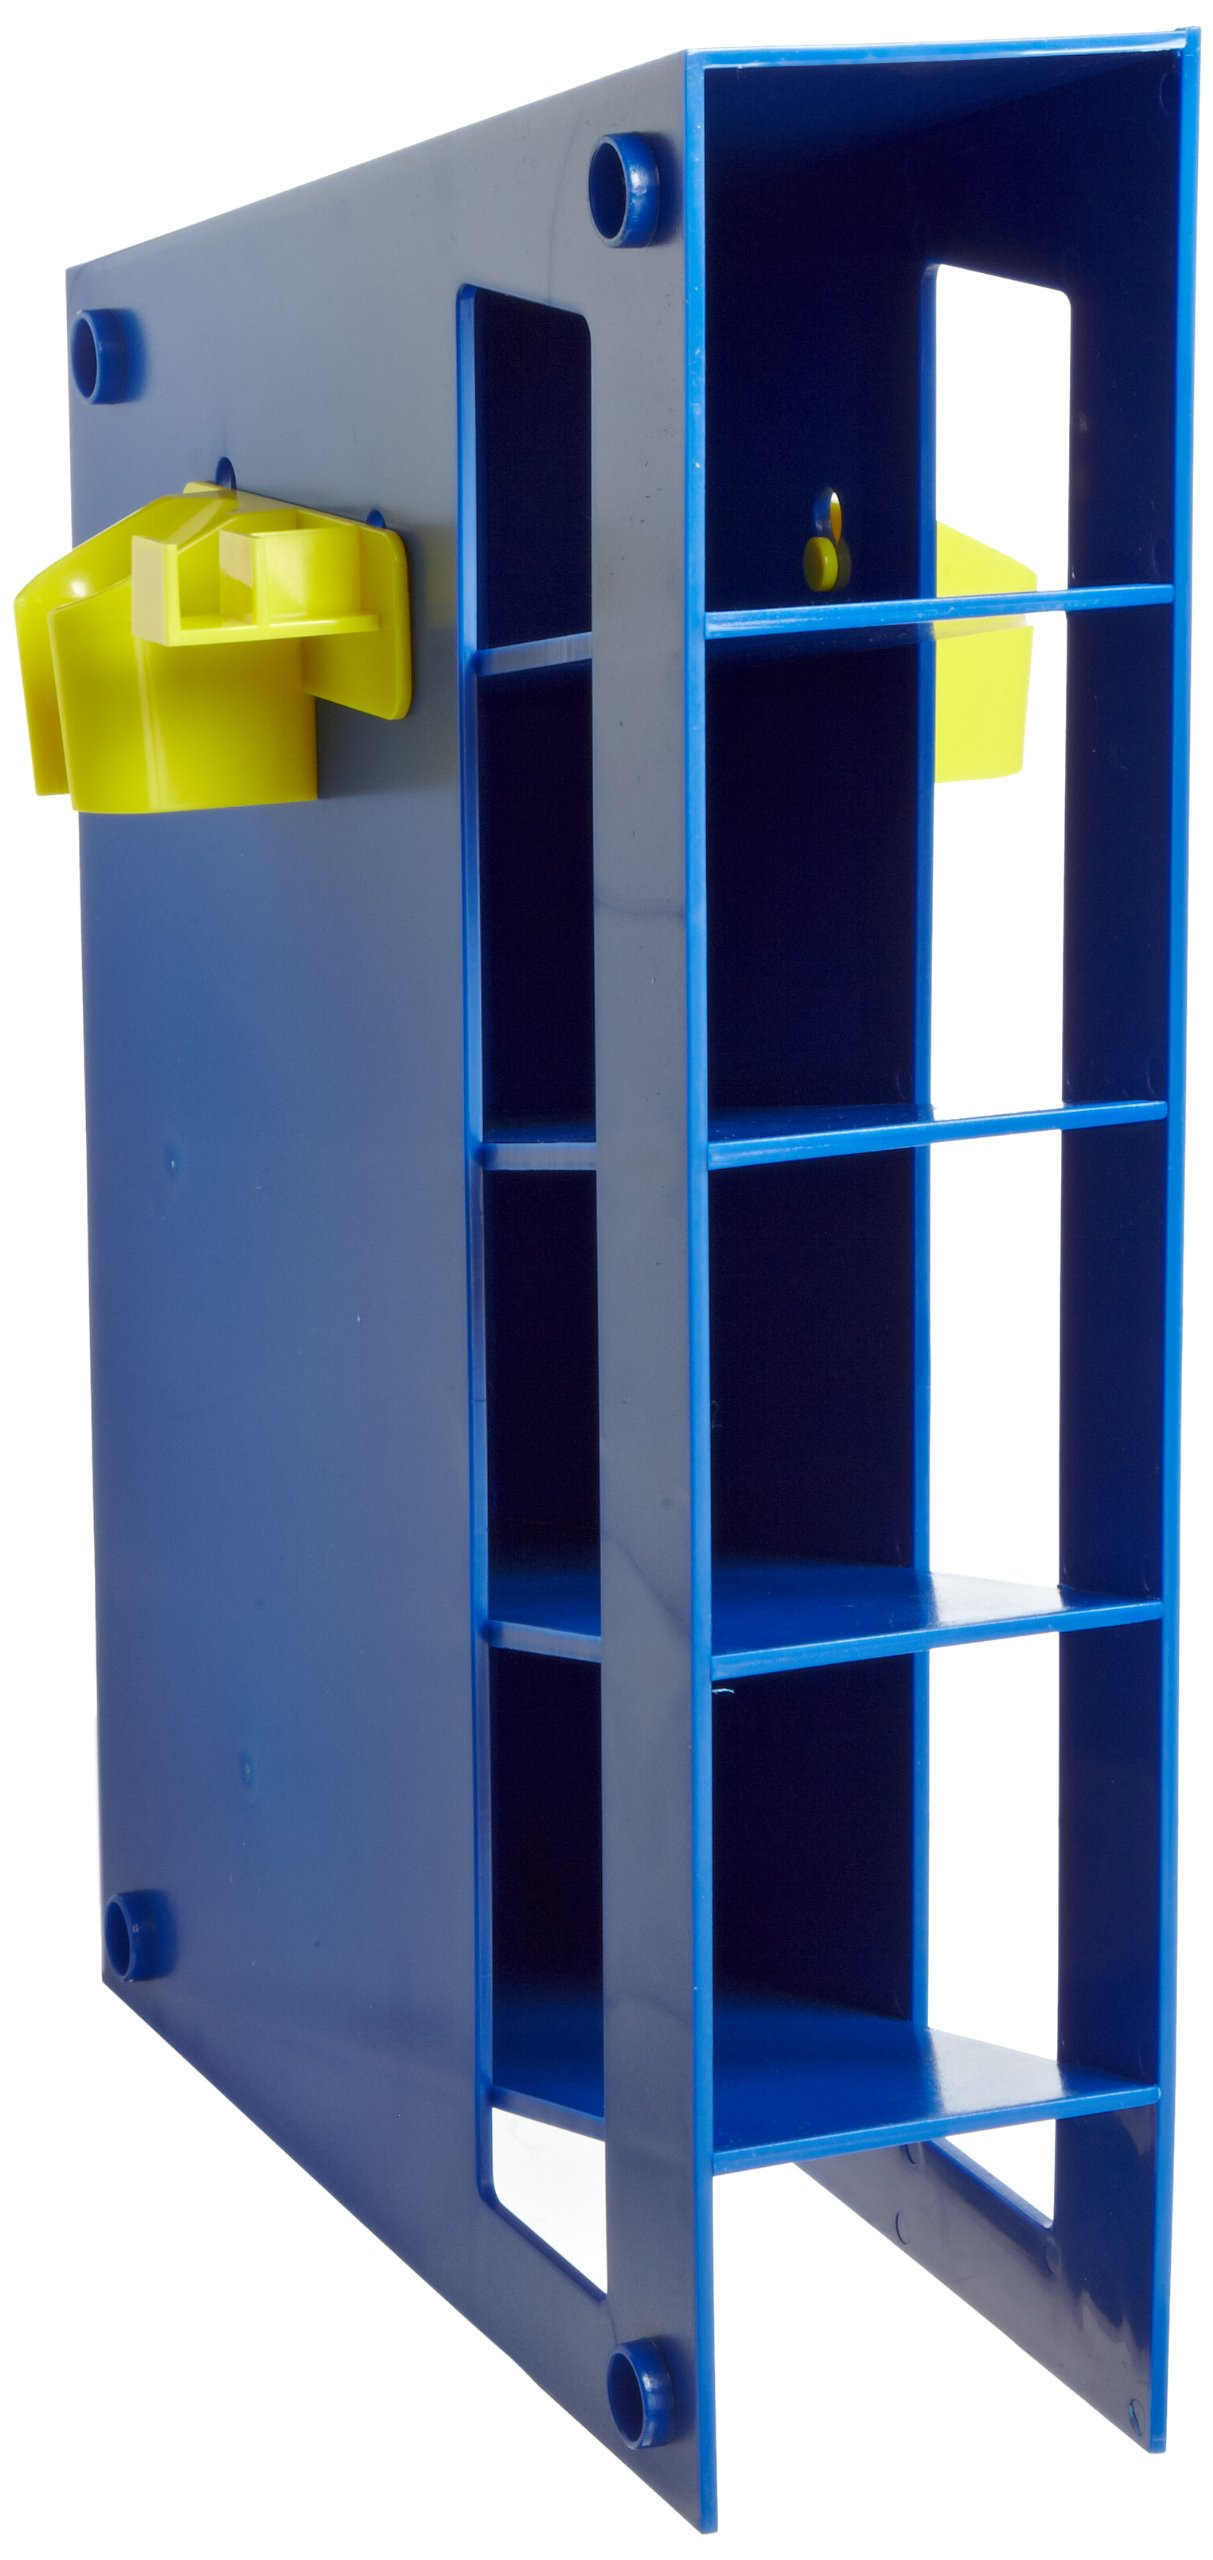 Heathrow Scientific HD20612 Blue ABS Plastic Manual Pipette Rack with 4 Compartment